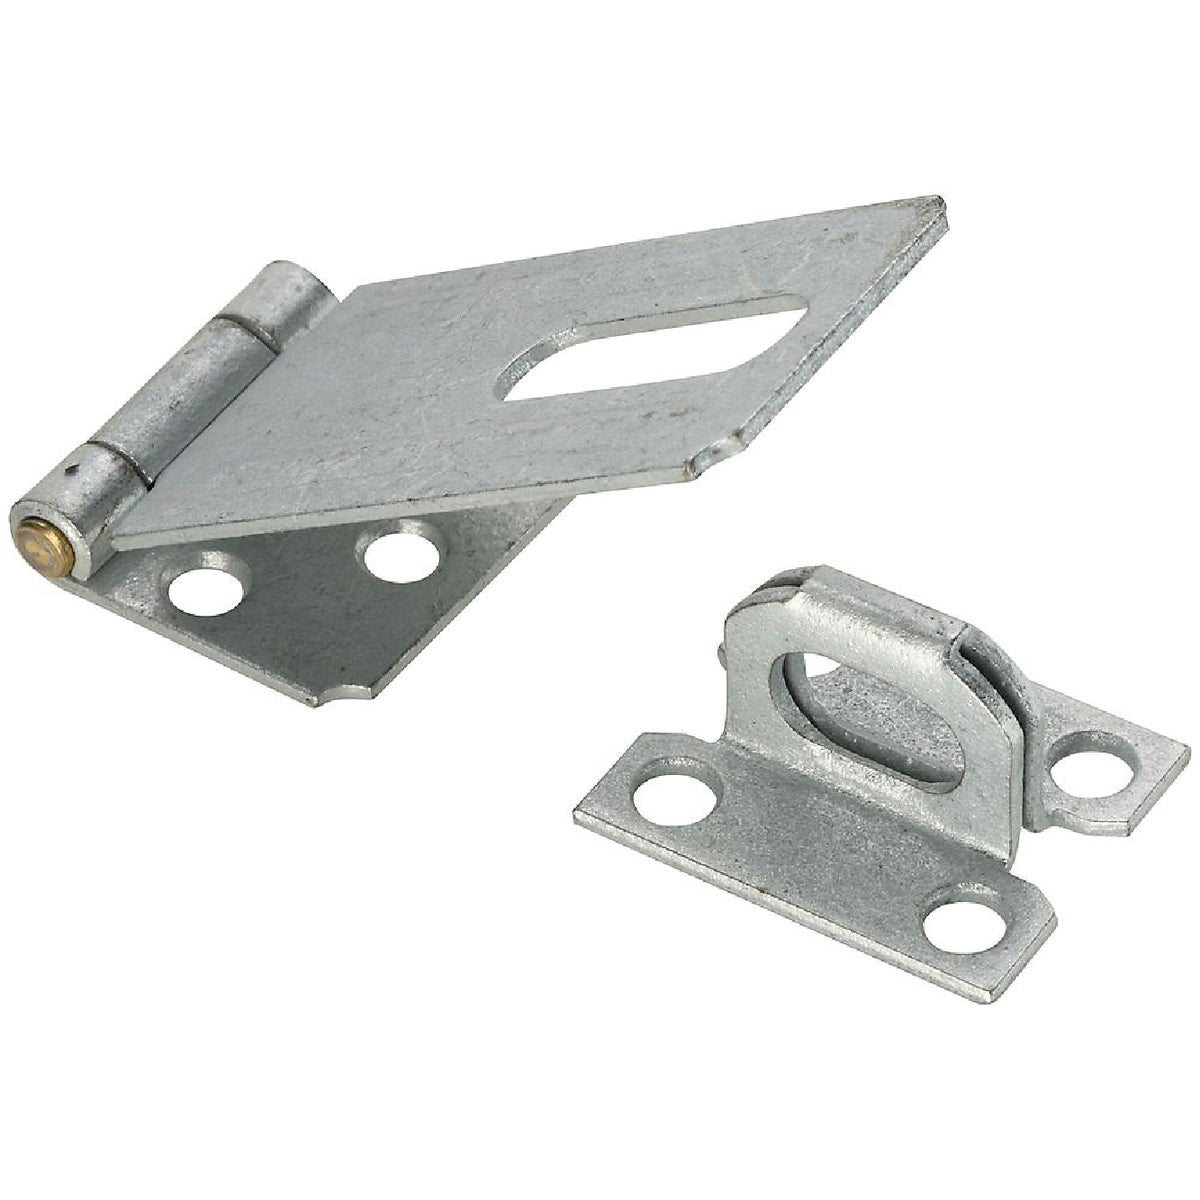 "3-1/4"" GALV SAFETY HASP - N102749 by National Mfg Co"